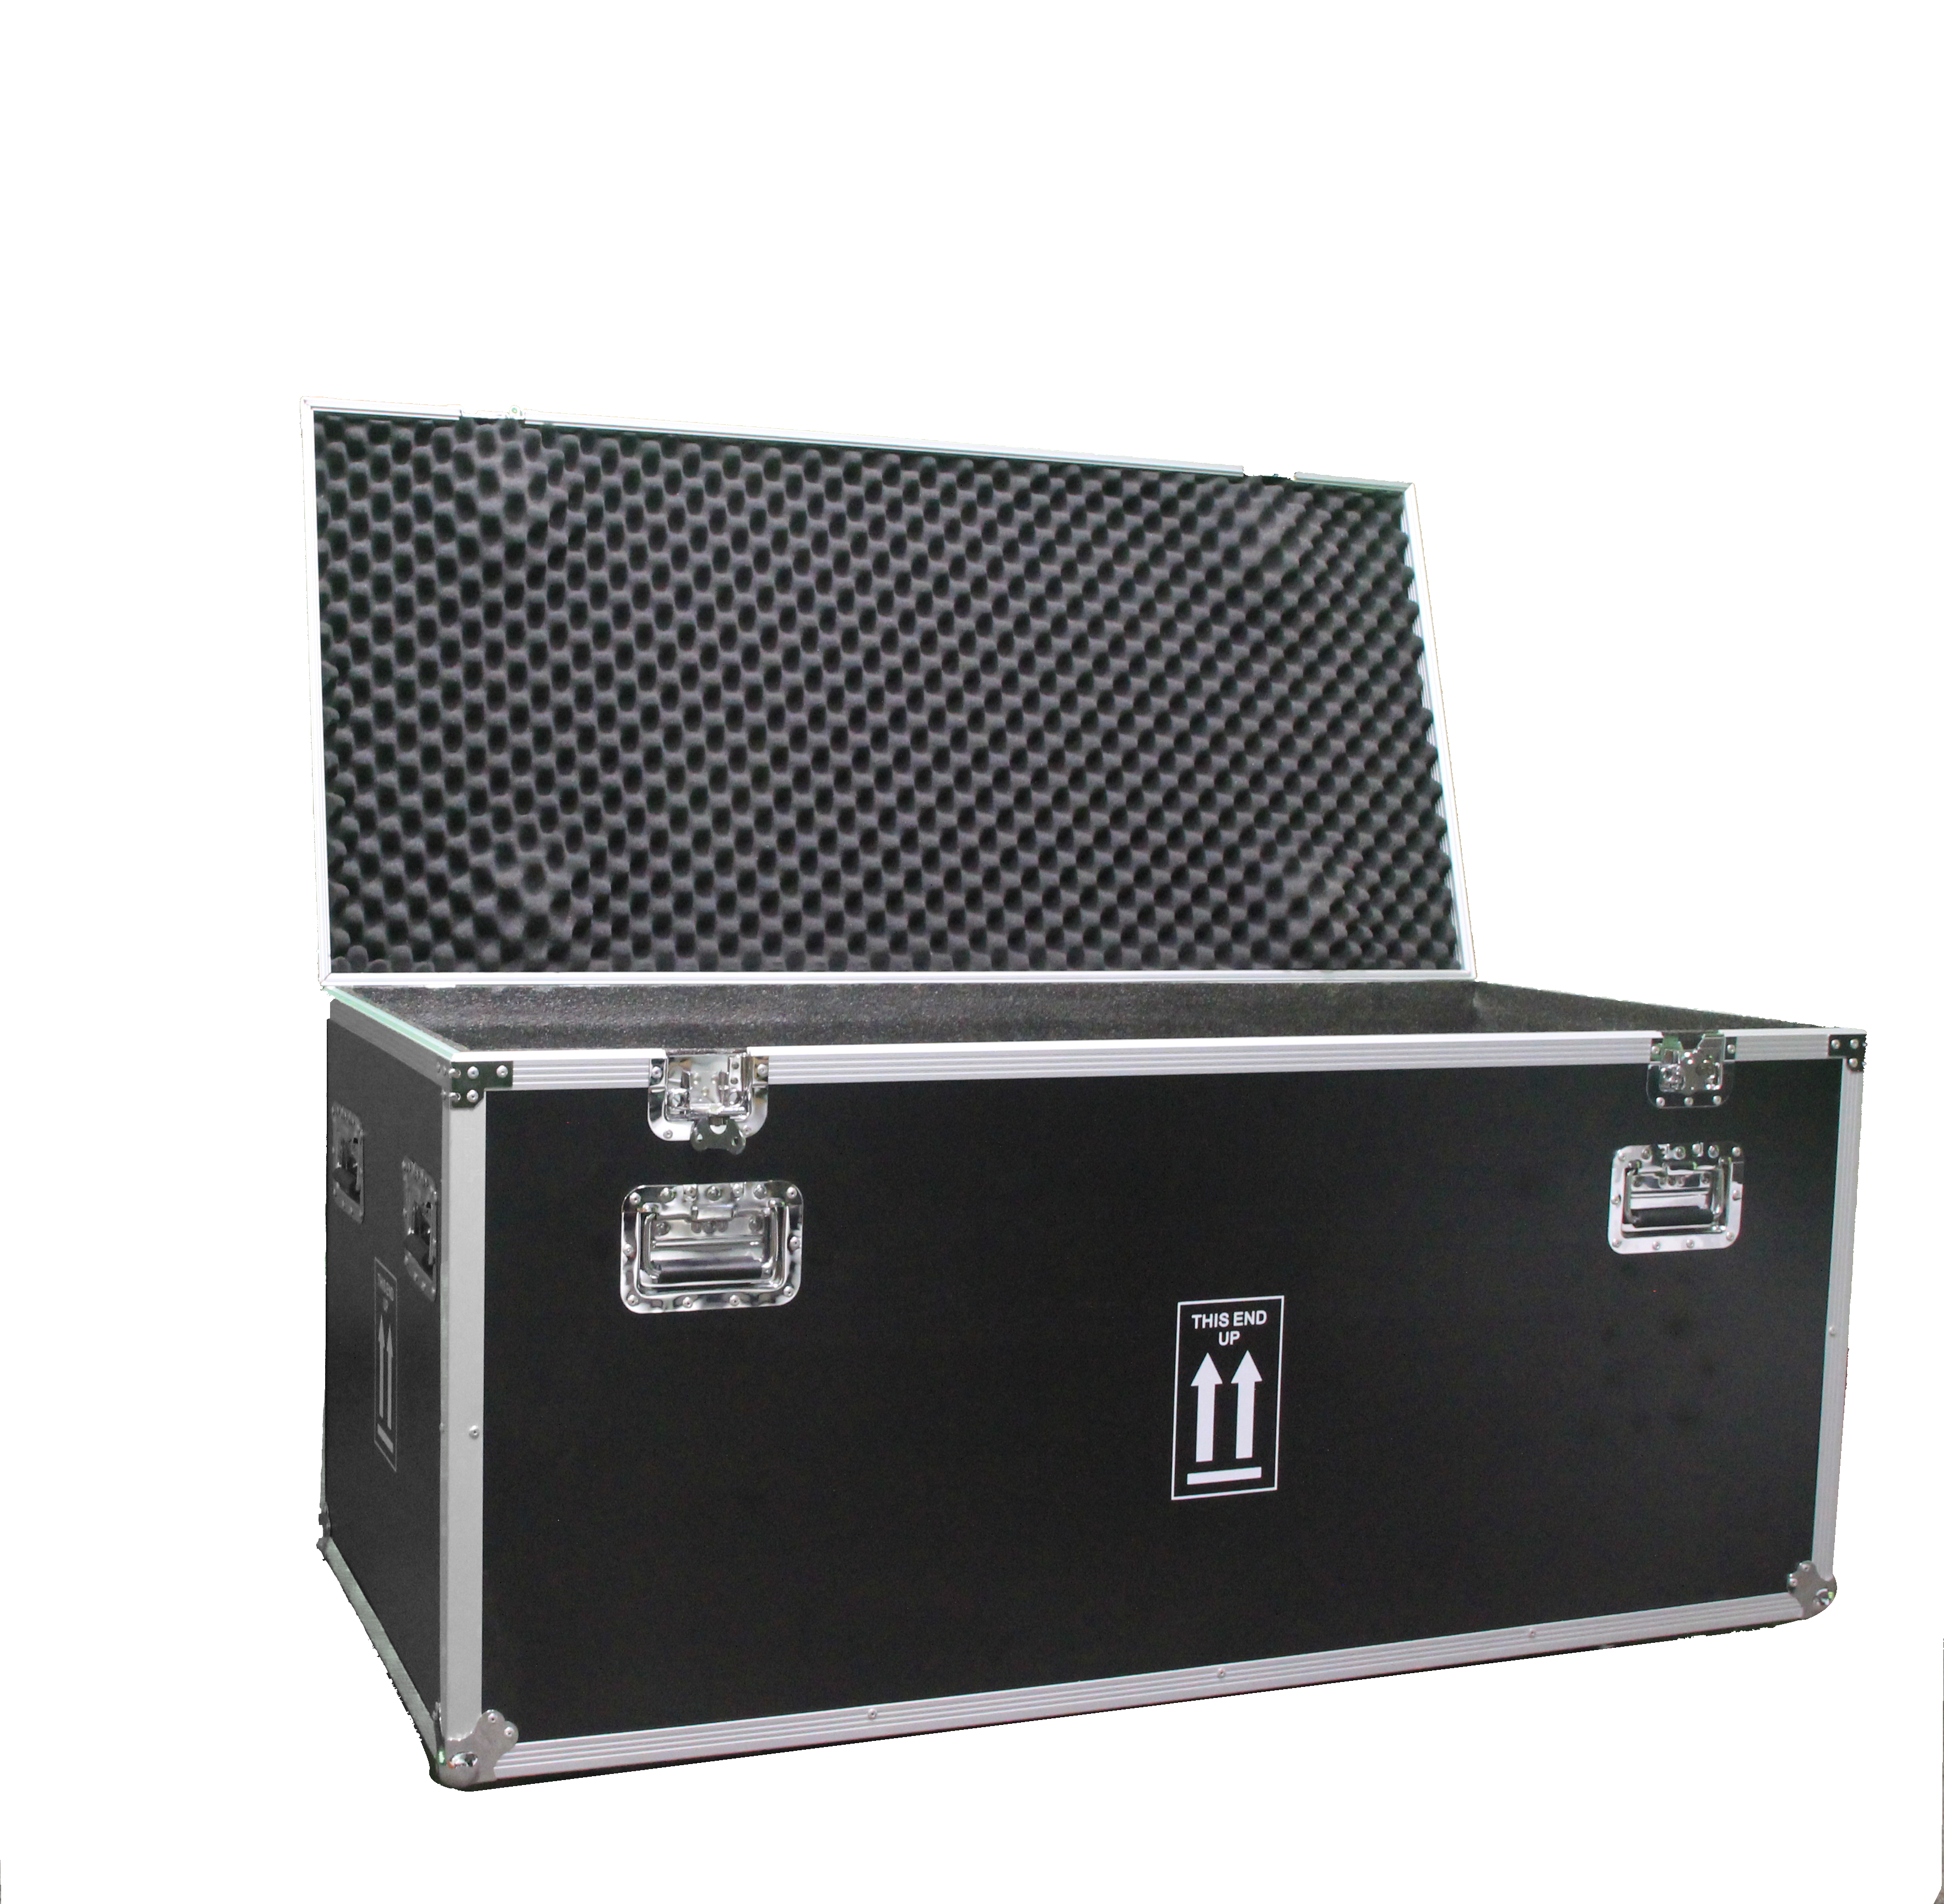 Pepper-New Transport Case-Store Image-TOP